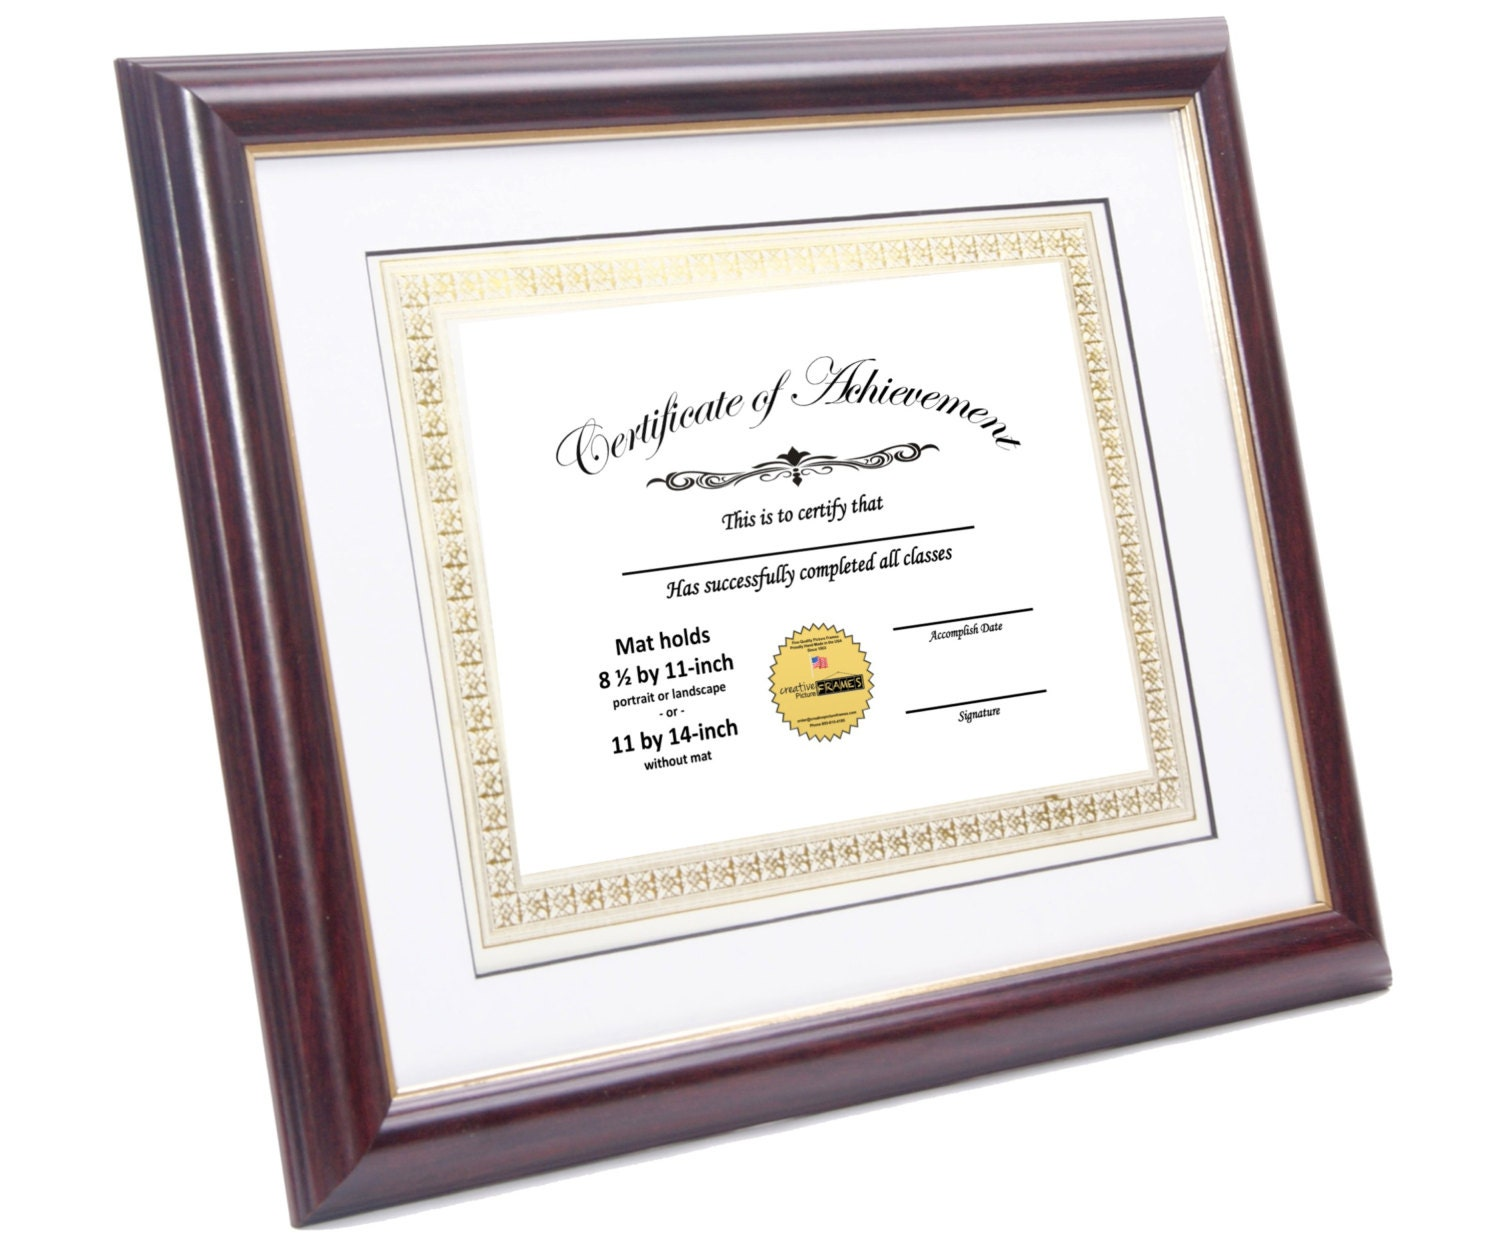 Certiicate Frame Mahogany W Gold Displays 8 5 By 11 Inch W